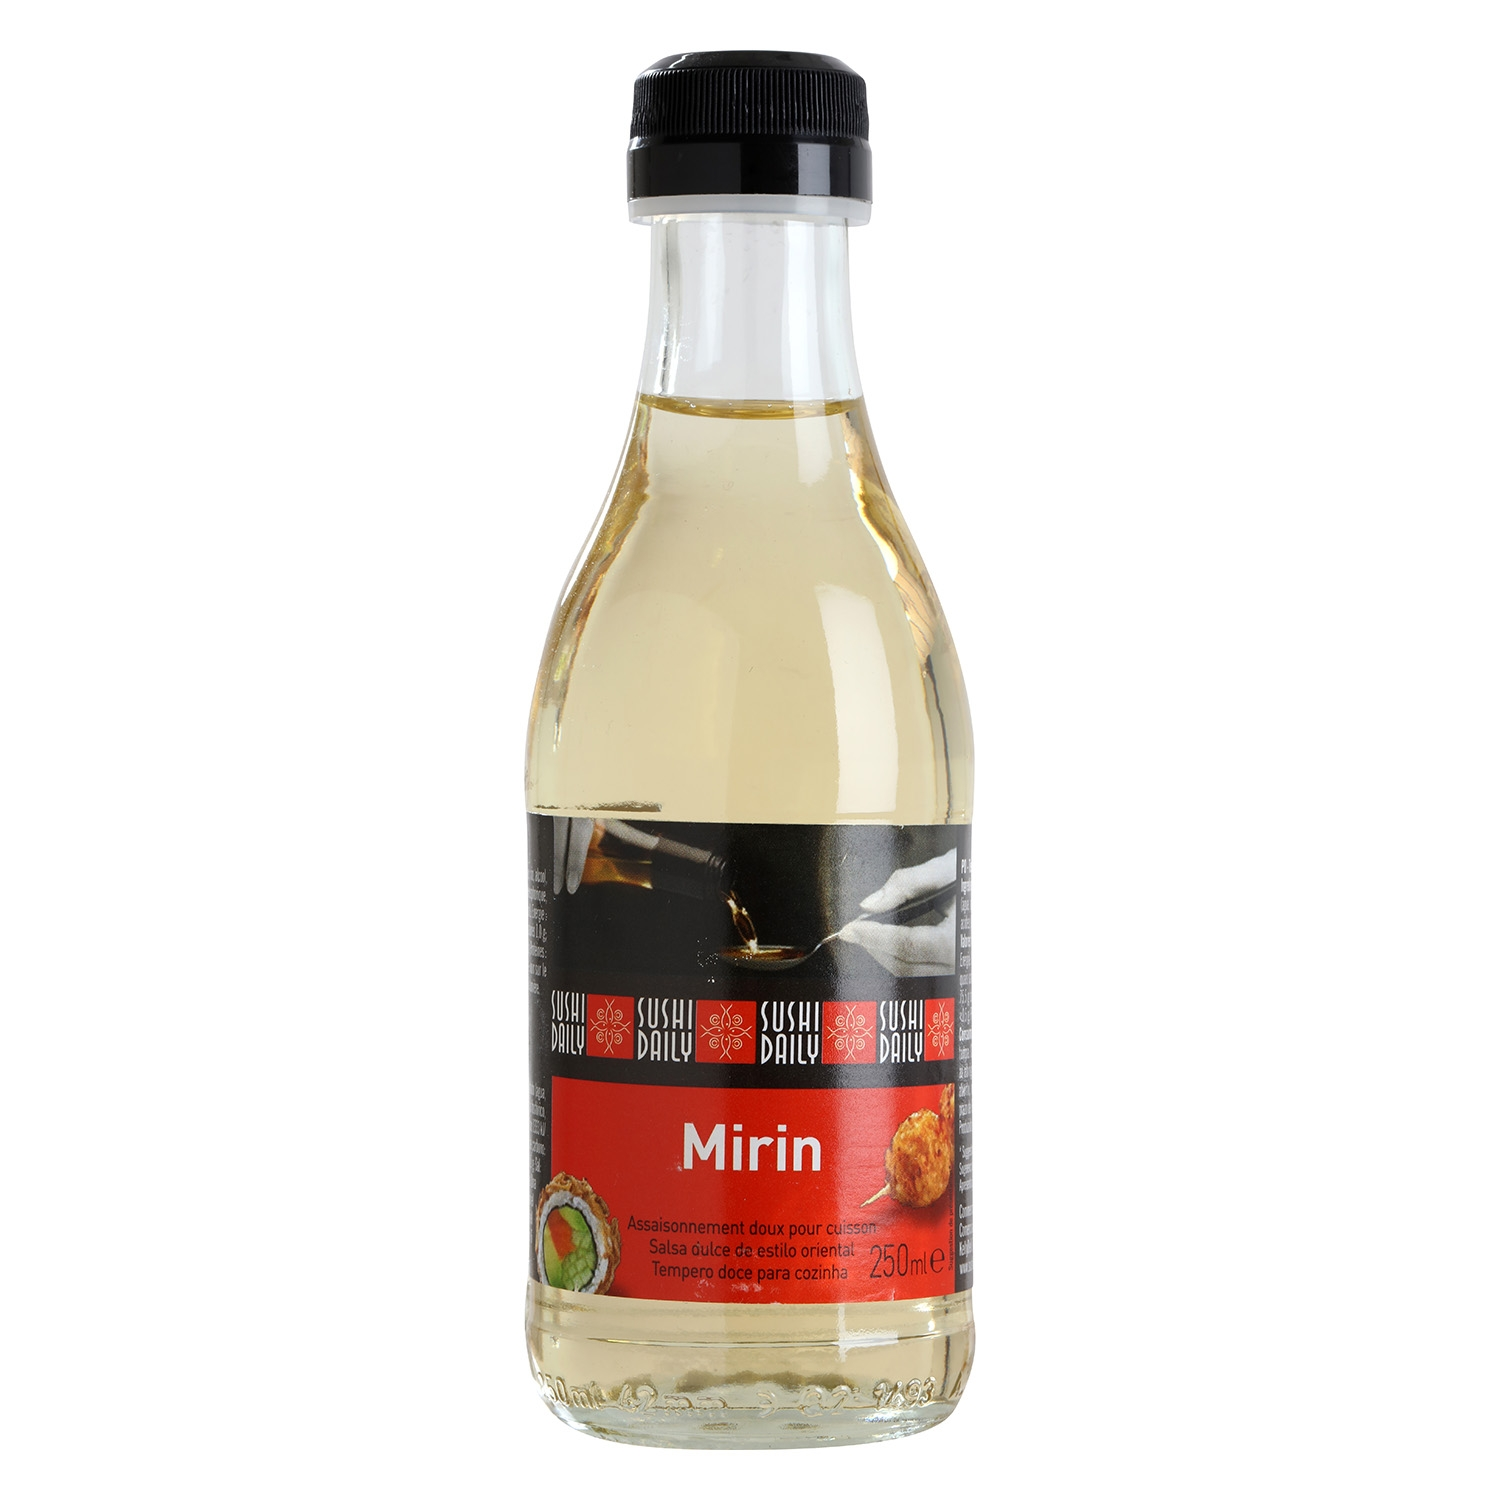 Mirin Sushi Daily 250 ml. - 2